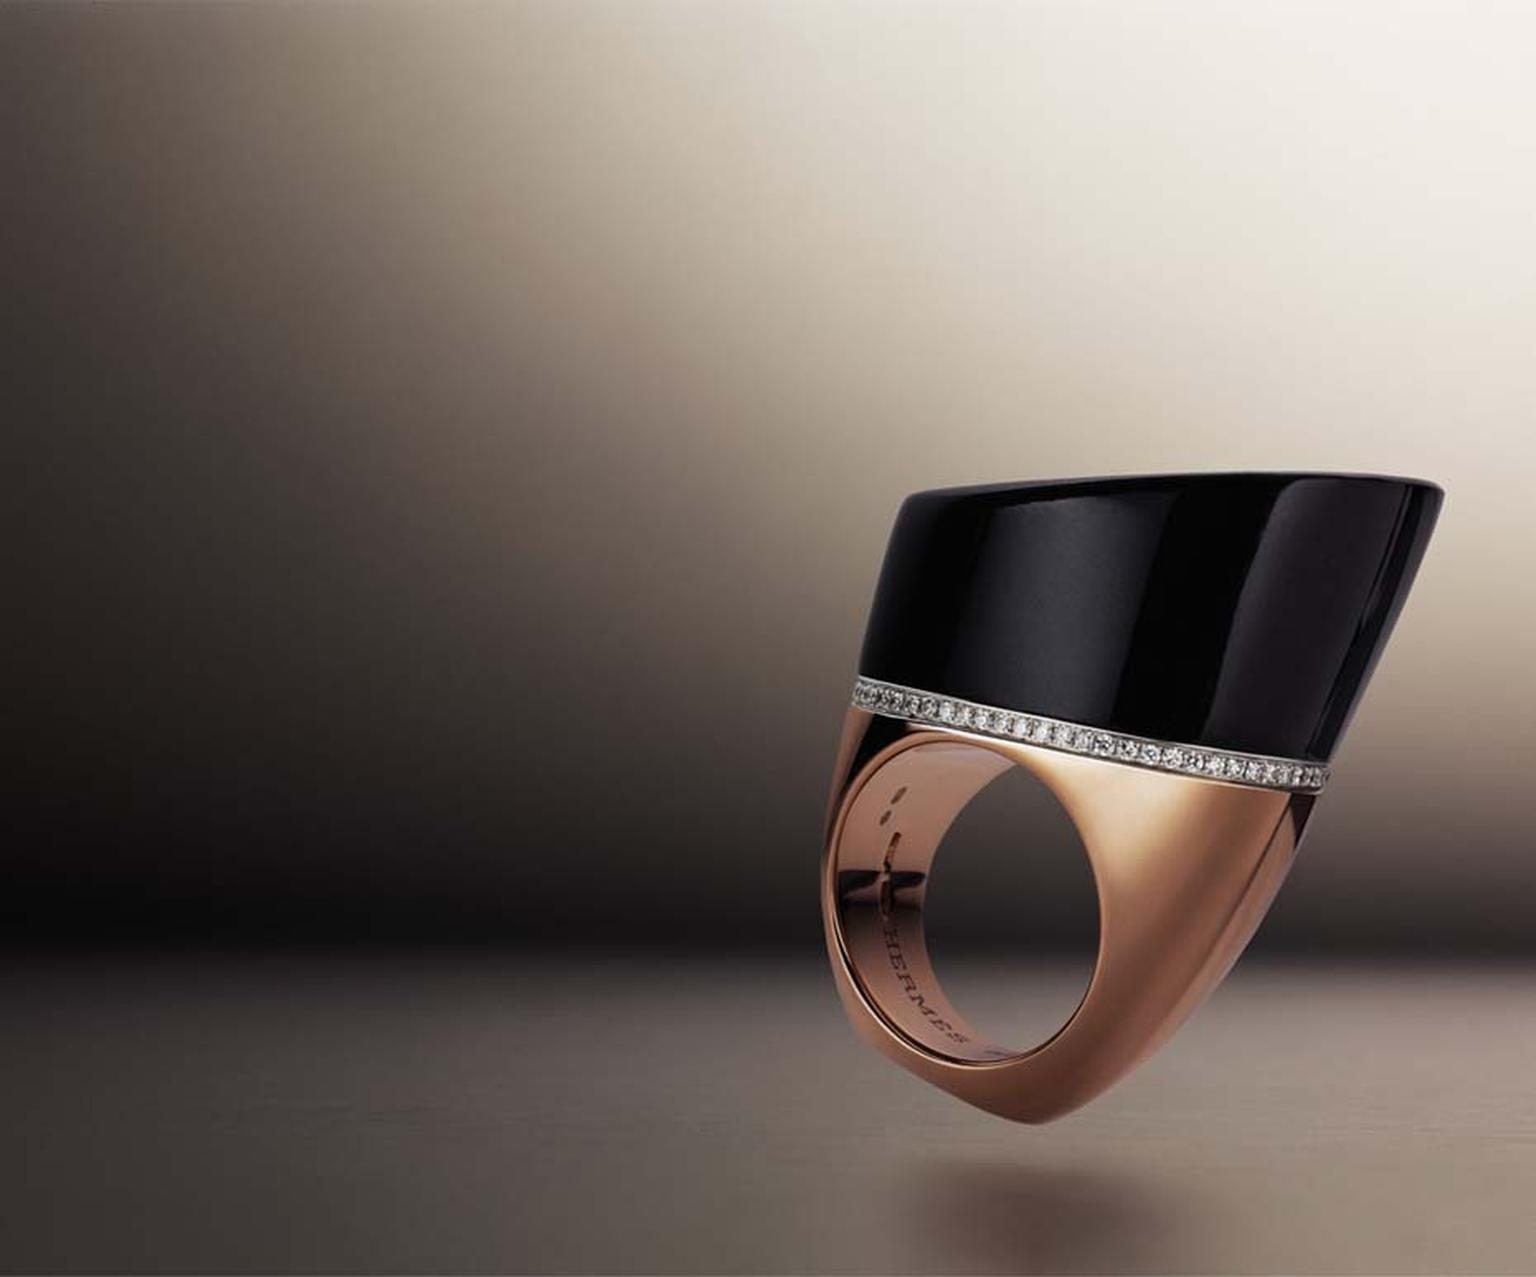 Hermès Centaure ring in rose gold with black jade and diamonds.